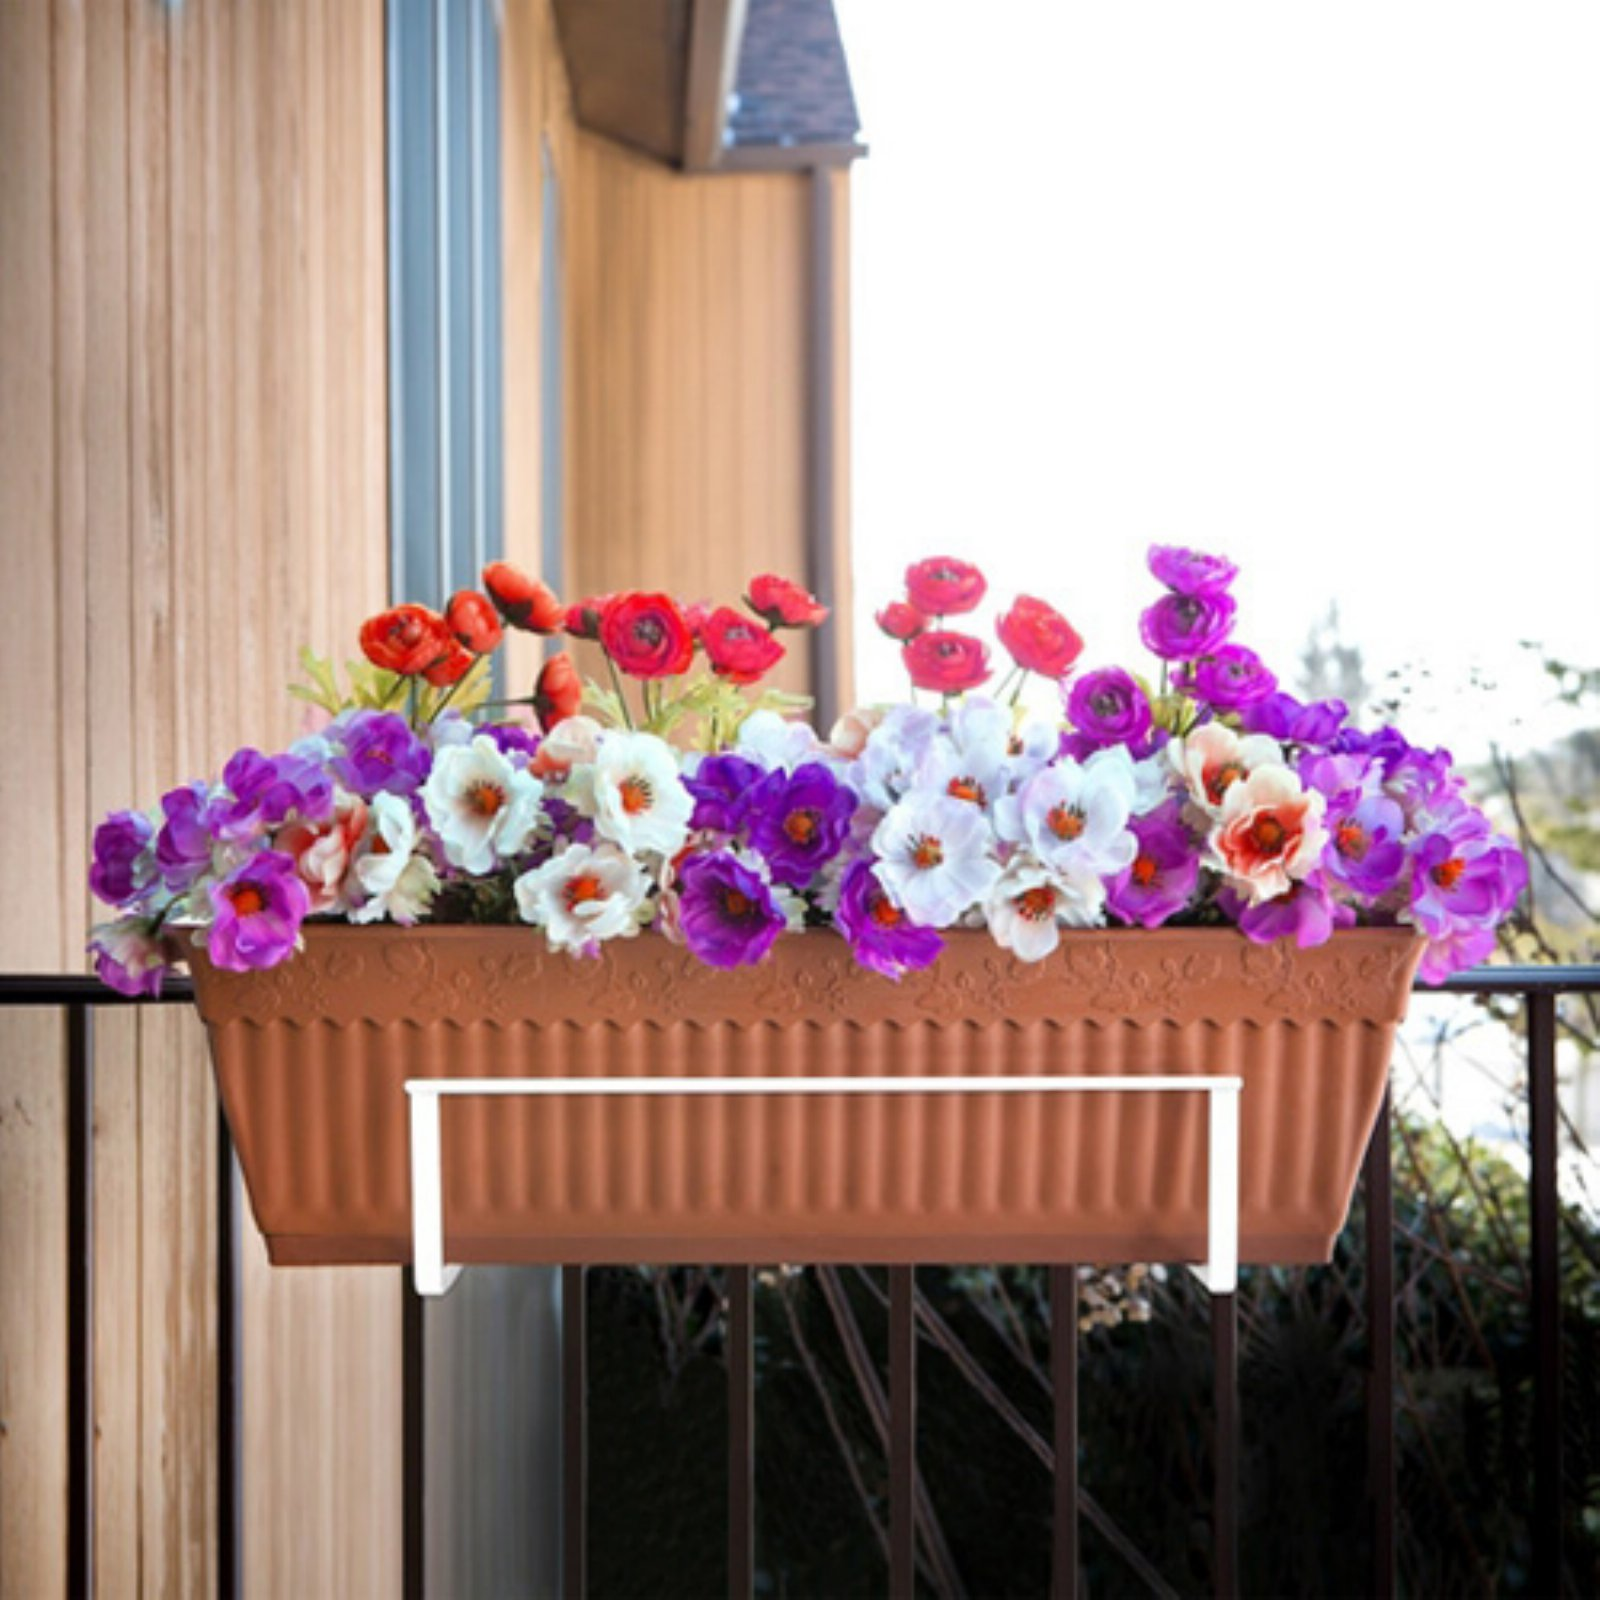 Sun Joe Deco Joe Adjustable Flower Box Holder - White